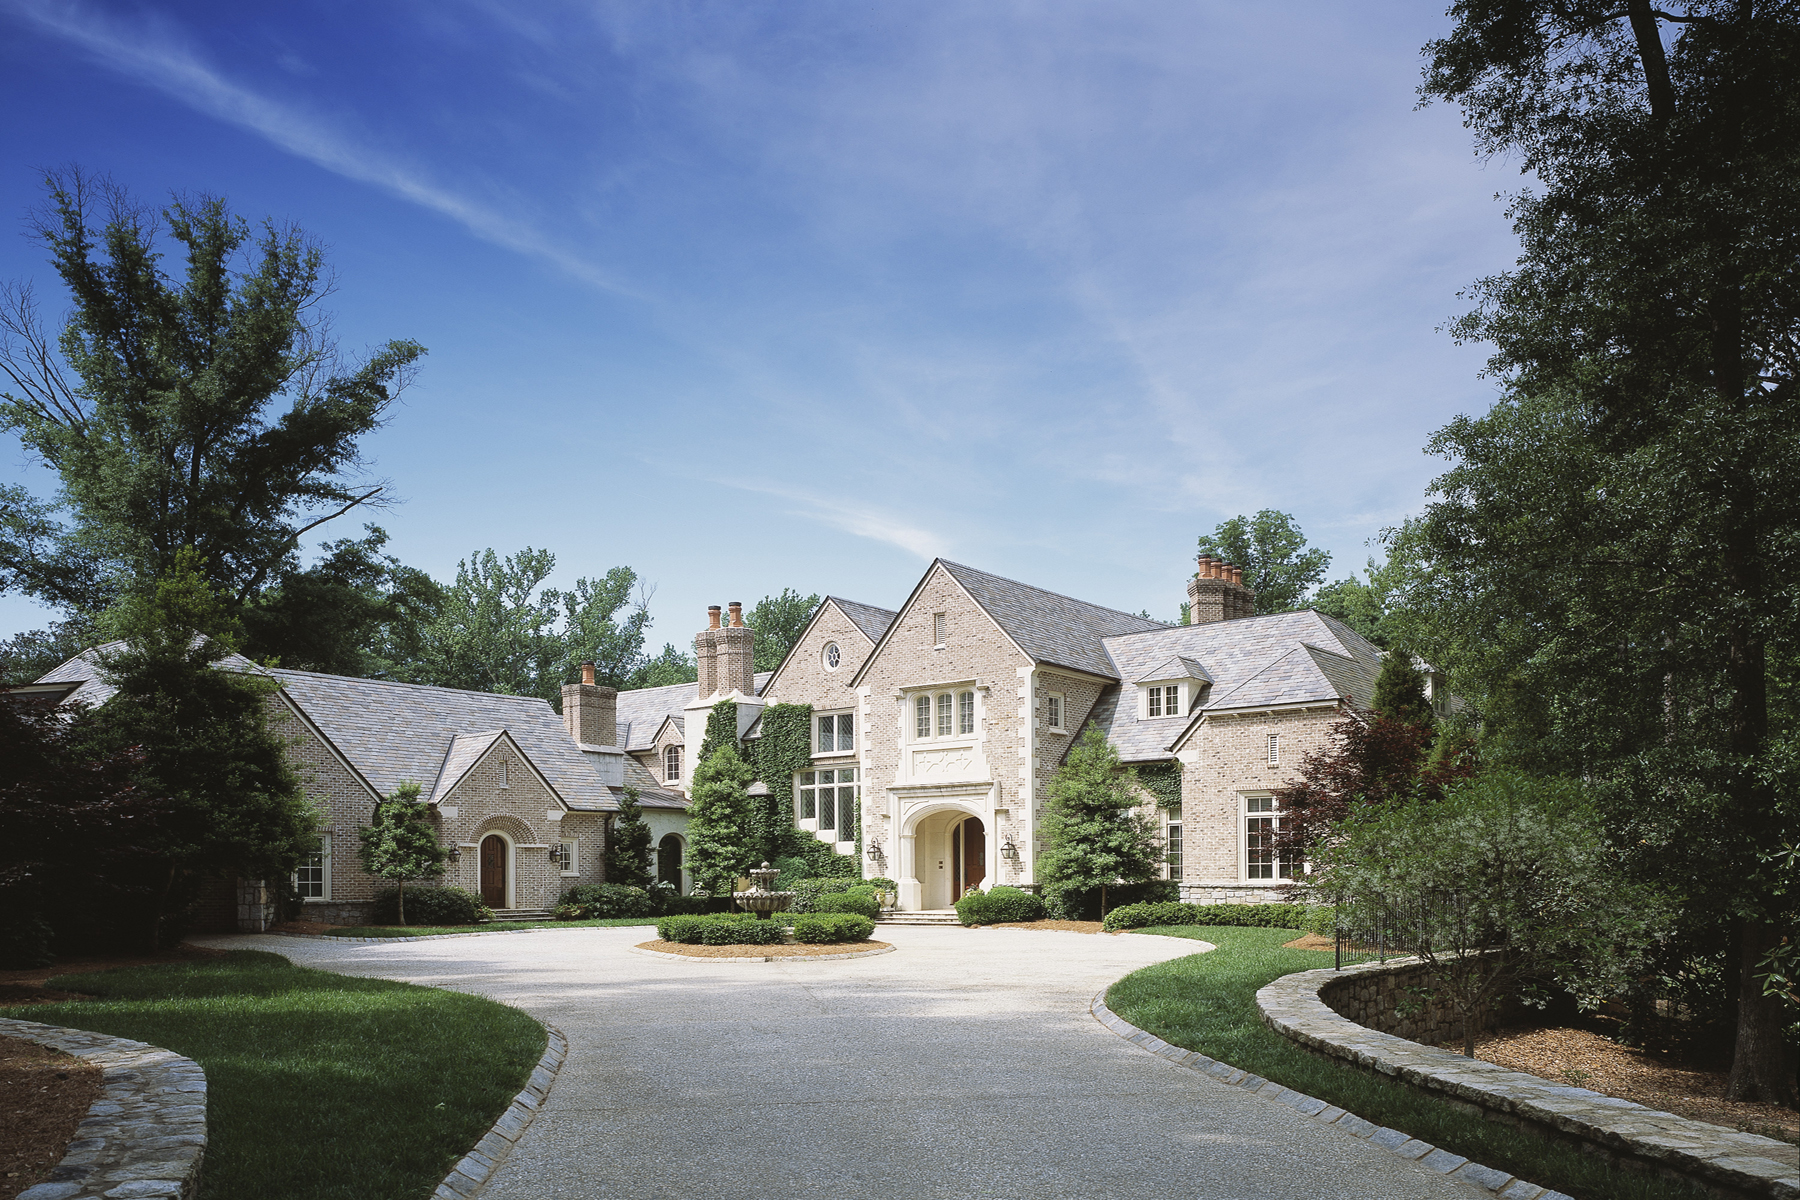 단독 가정 주택 용 매매 에 An Award Winning Tudor In Buckhead 2032 W Paces Ferry Road Buckhead, Atlanta, 조지아, 30327 미국